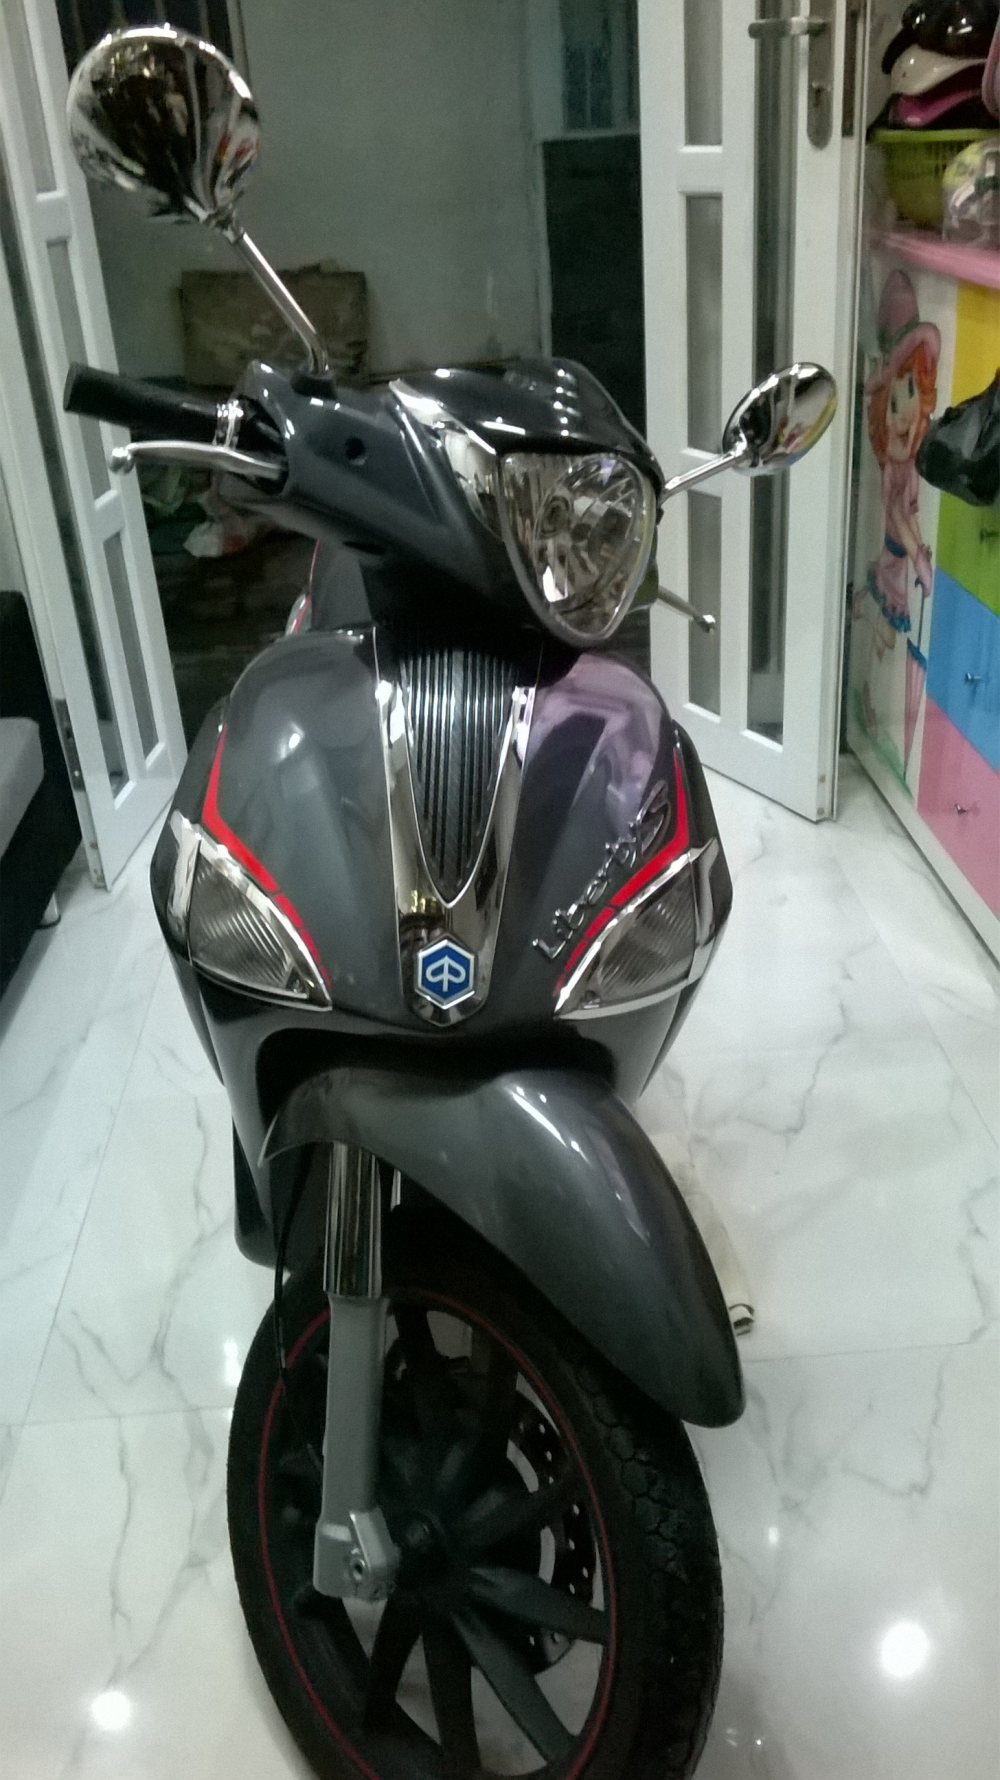 XE LIBERTY 125 3V ie S MAU DEN VIEN DO 2015